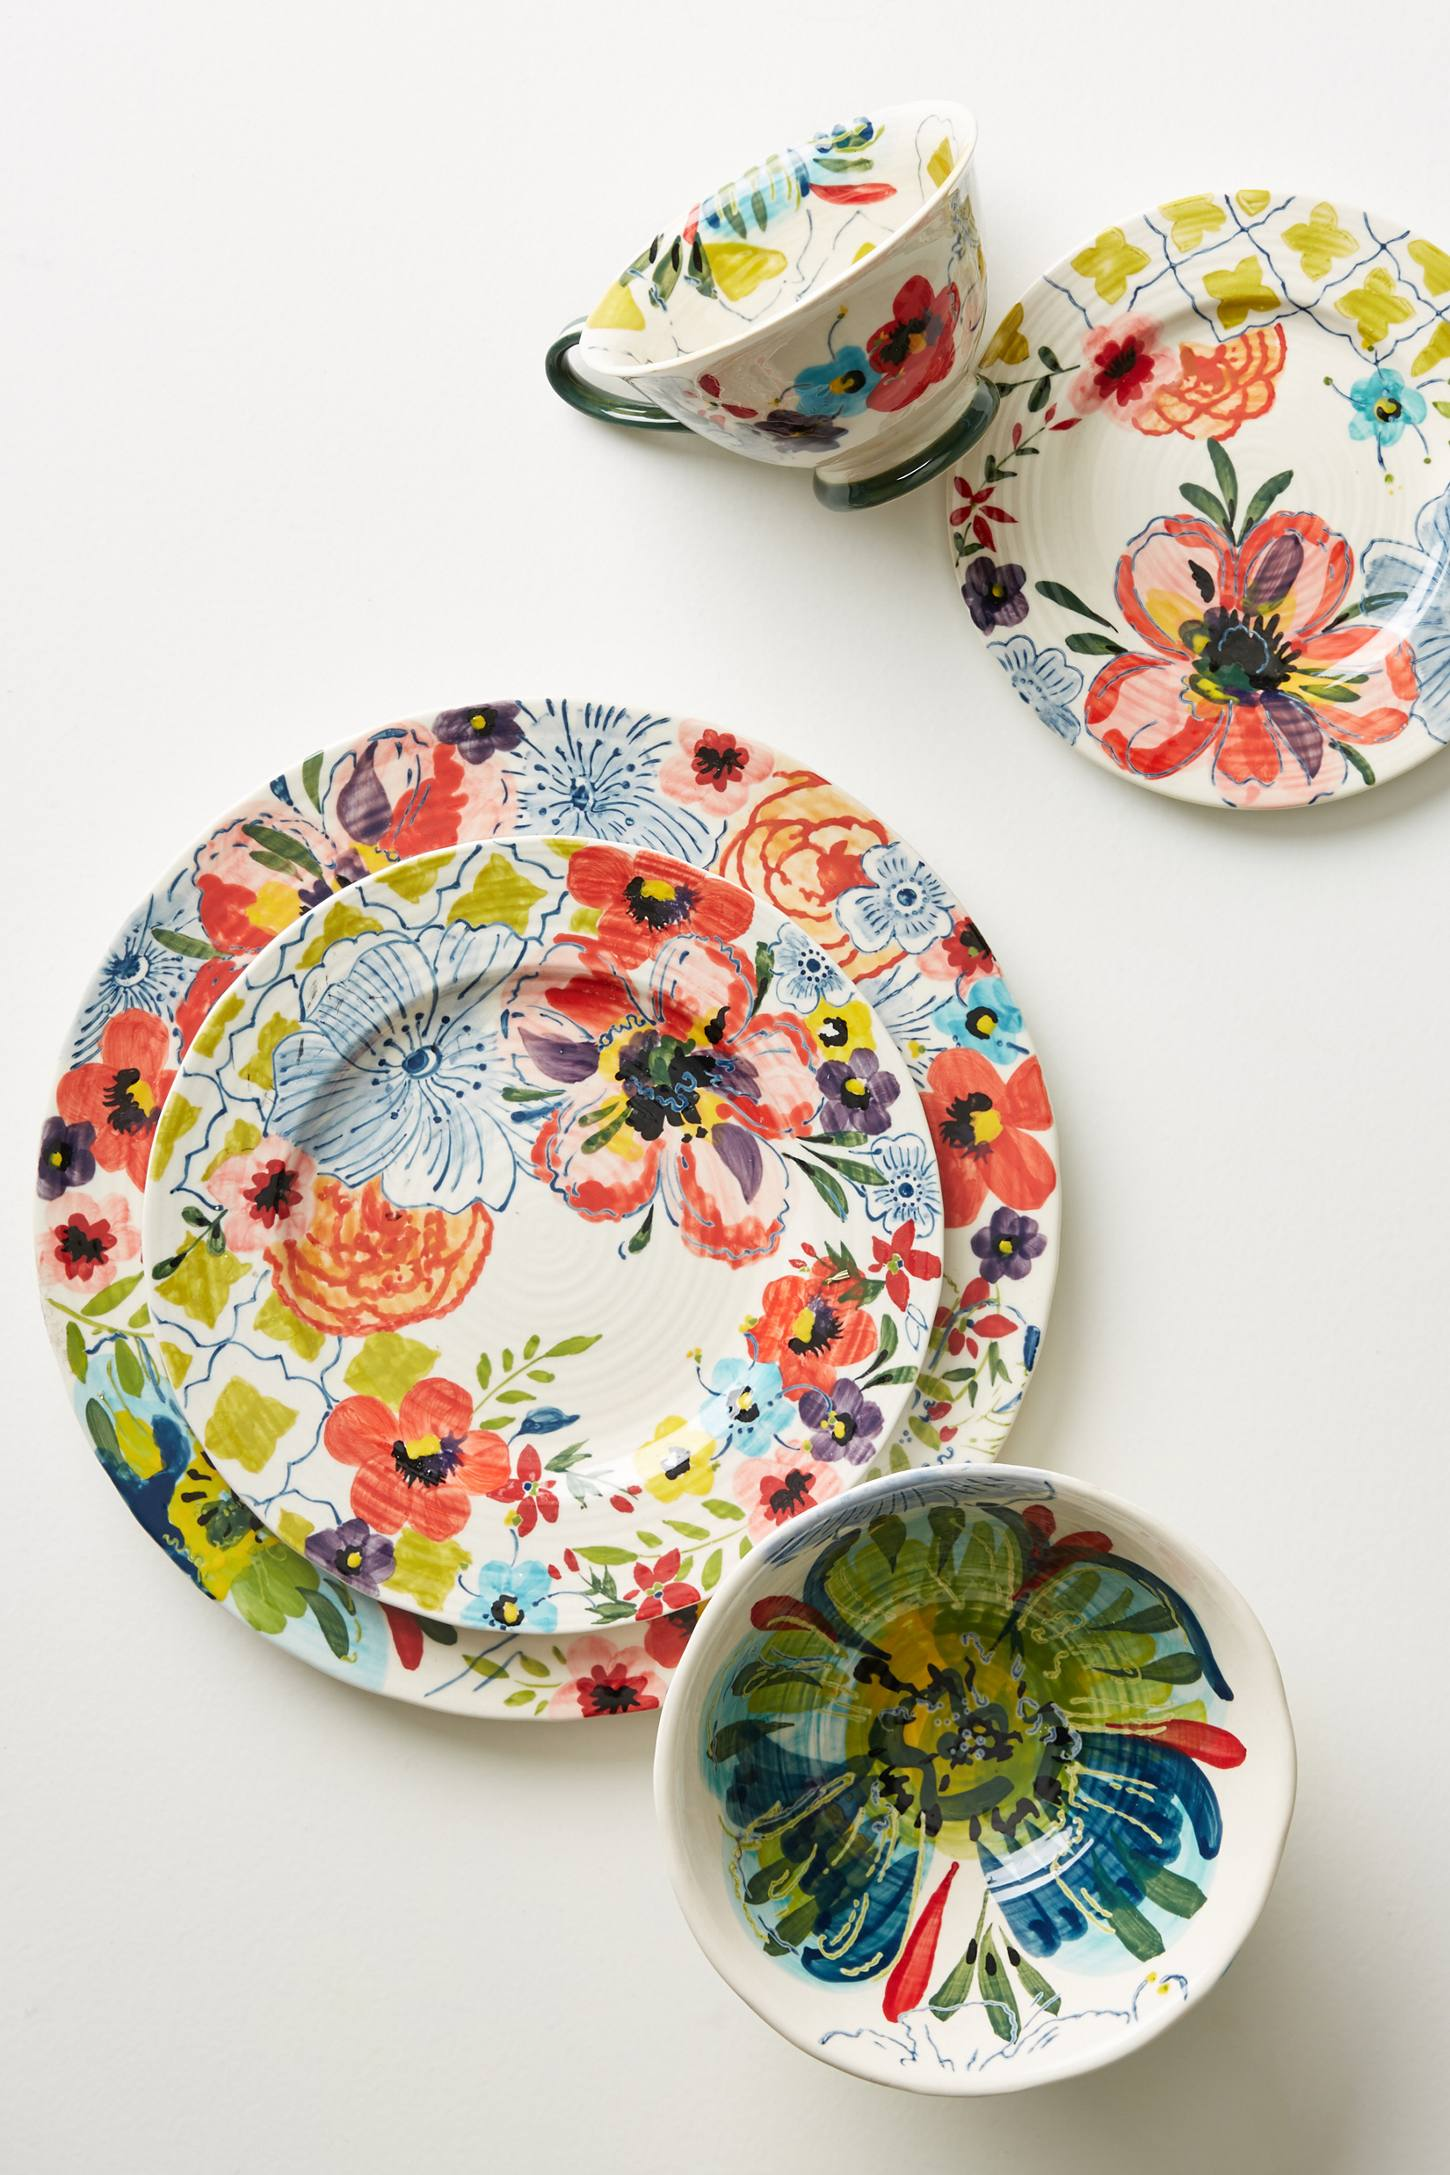 Slide View: 1: Sissinghurst Castle Dinner Plate